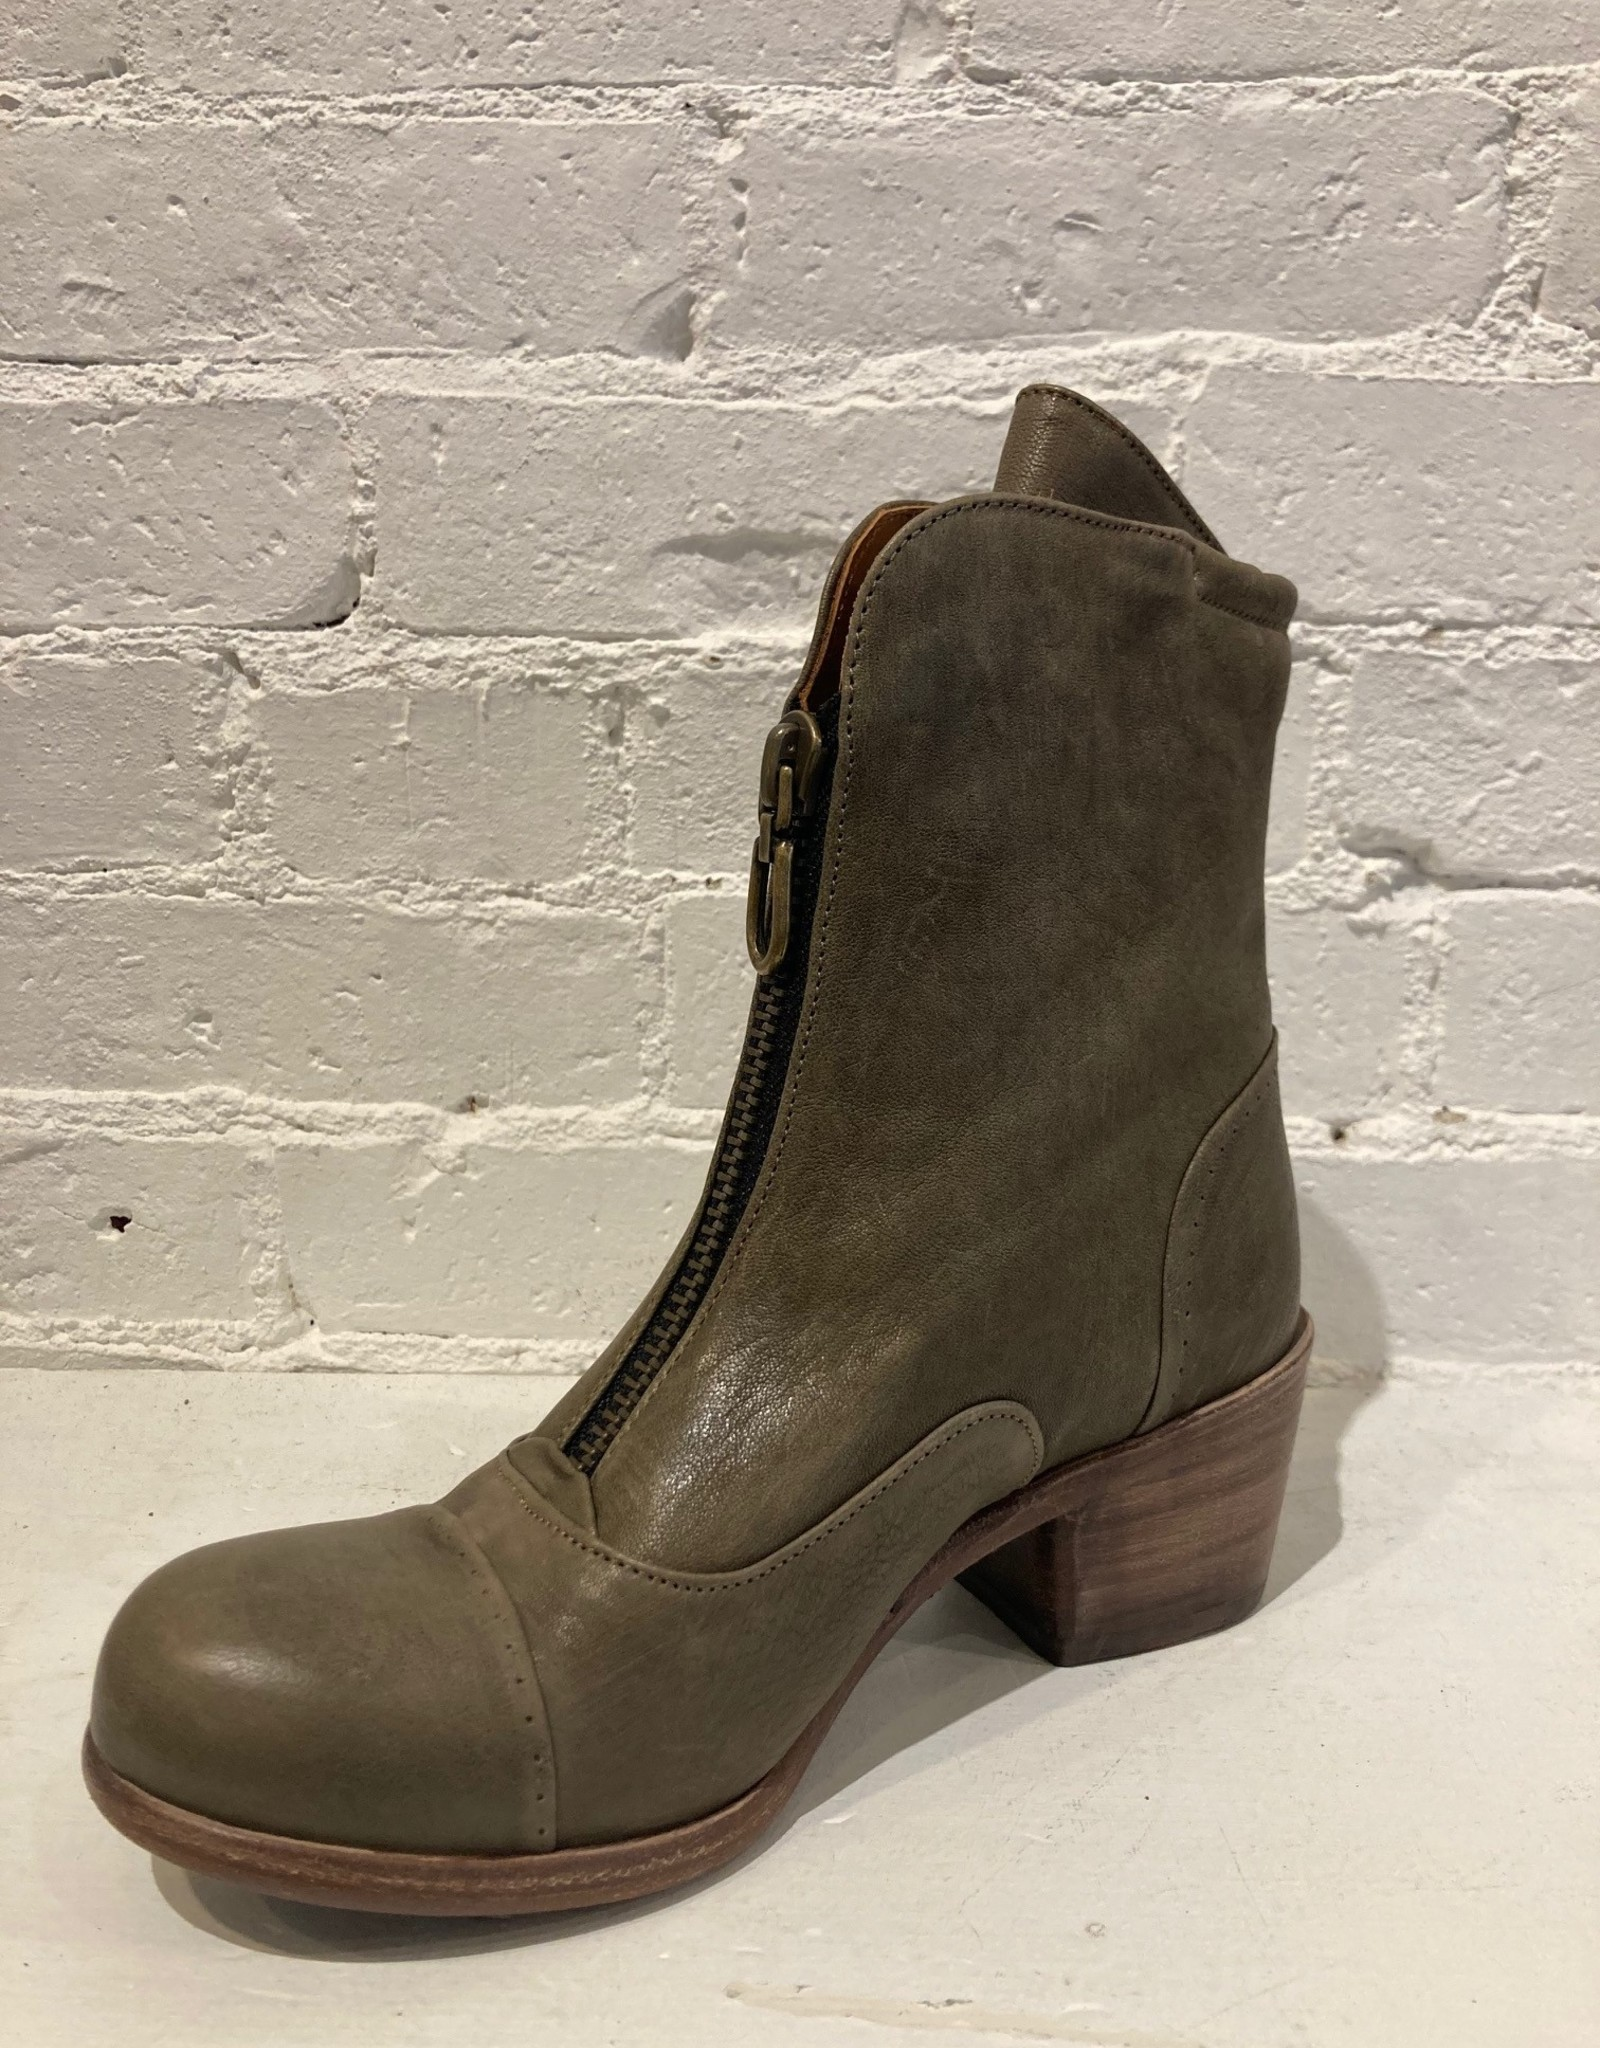 P. Monjo P Monjo Zip front Blur Boot size 36